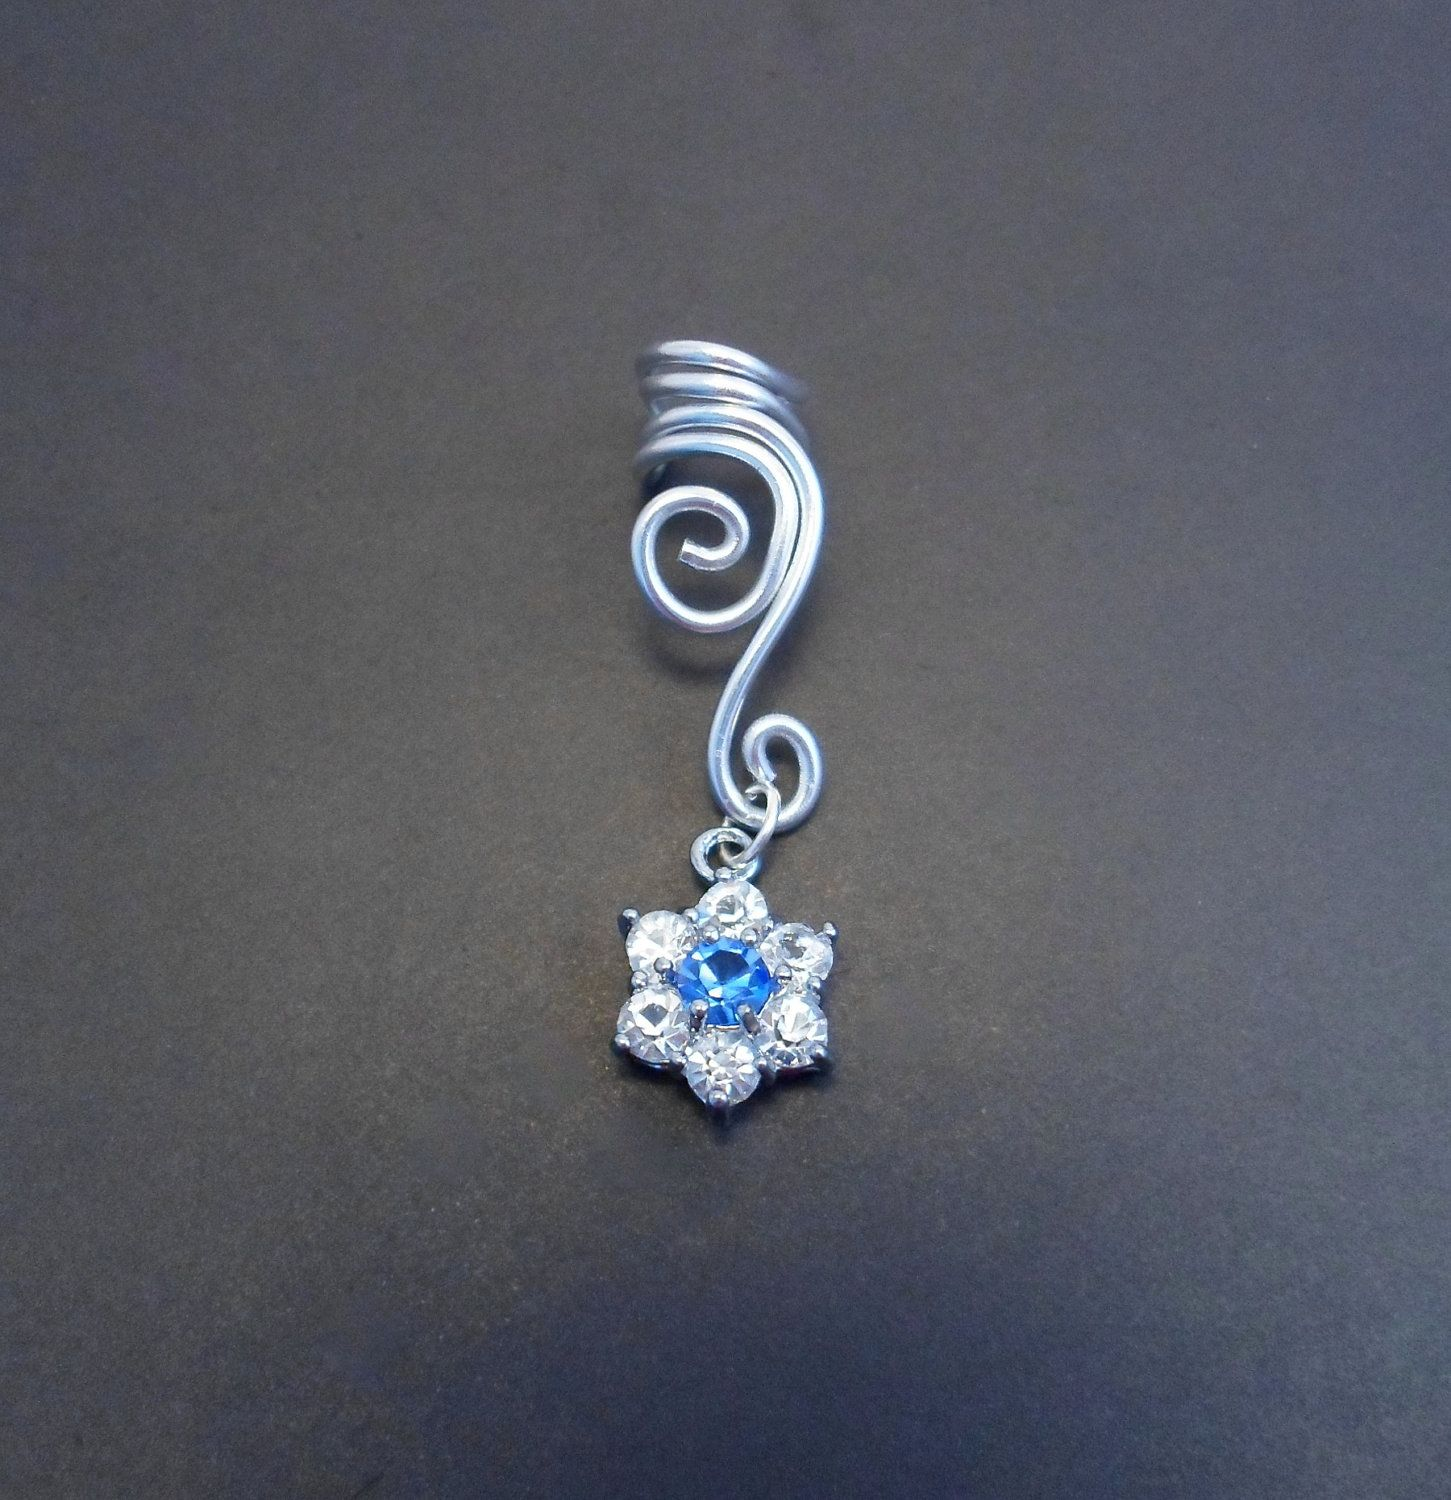 Double Spiral Ear Cuff With Fake Diamonds Flower In Wire